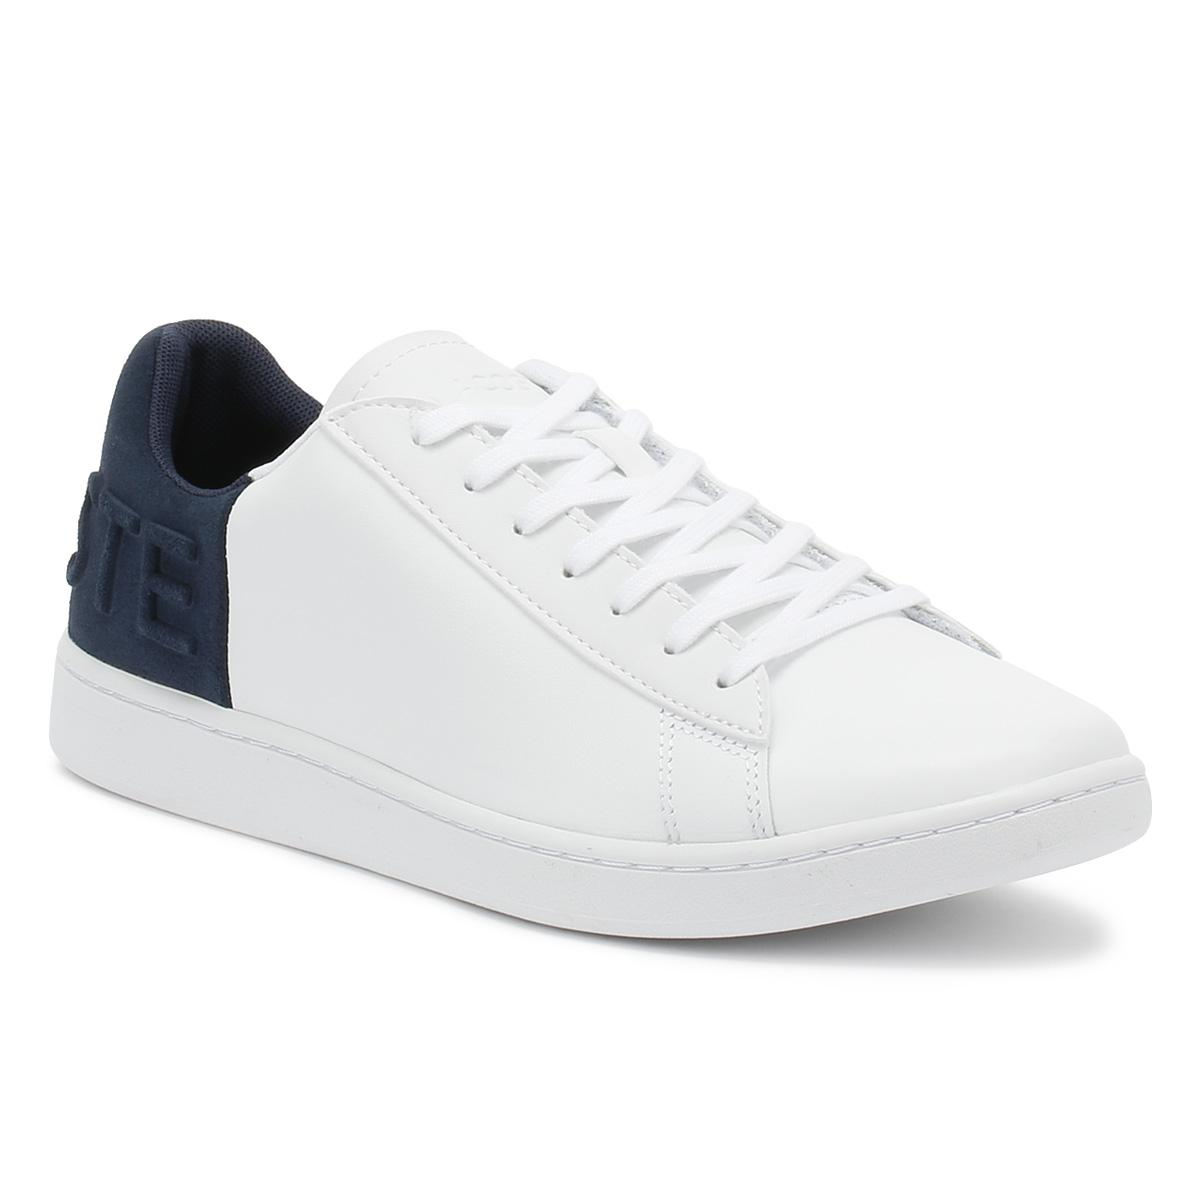 f62aacc7f3da Lyst - Lacoste Womens White   Navy Carnaby Evo 318 3 Trainers in White